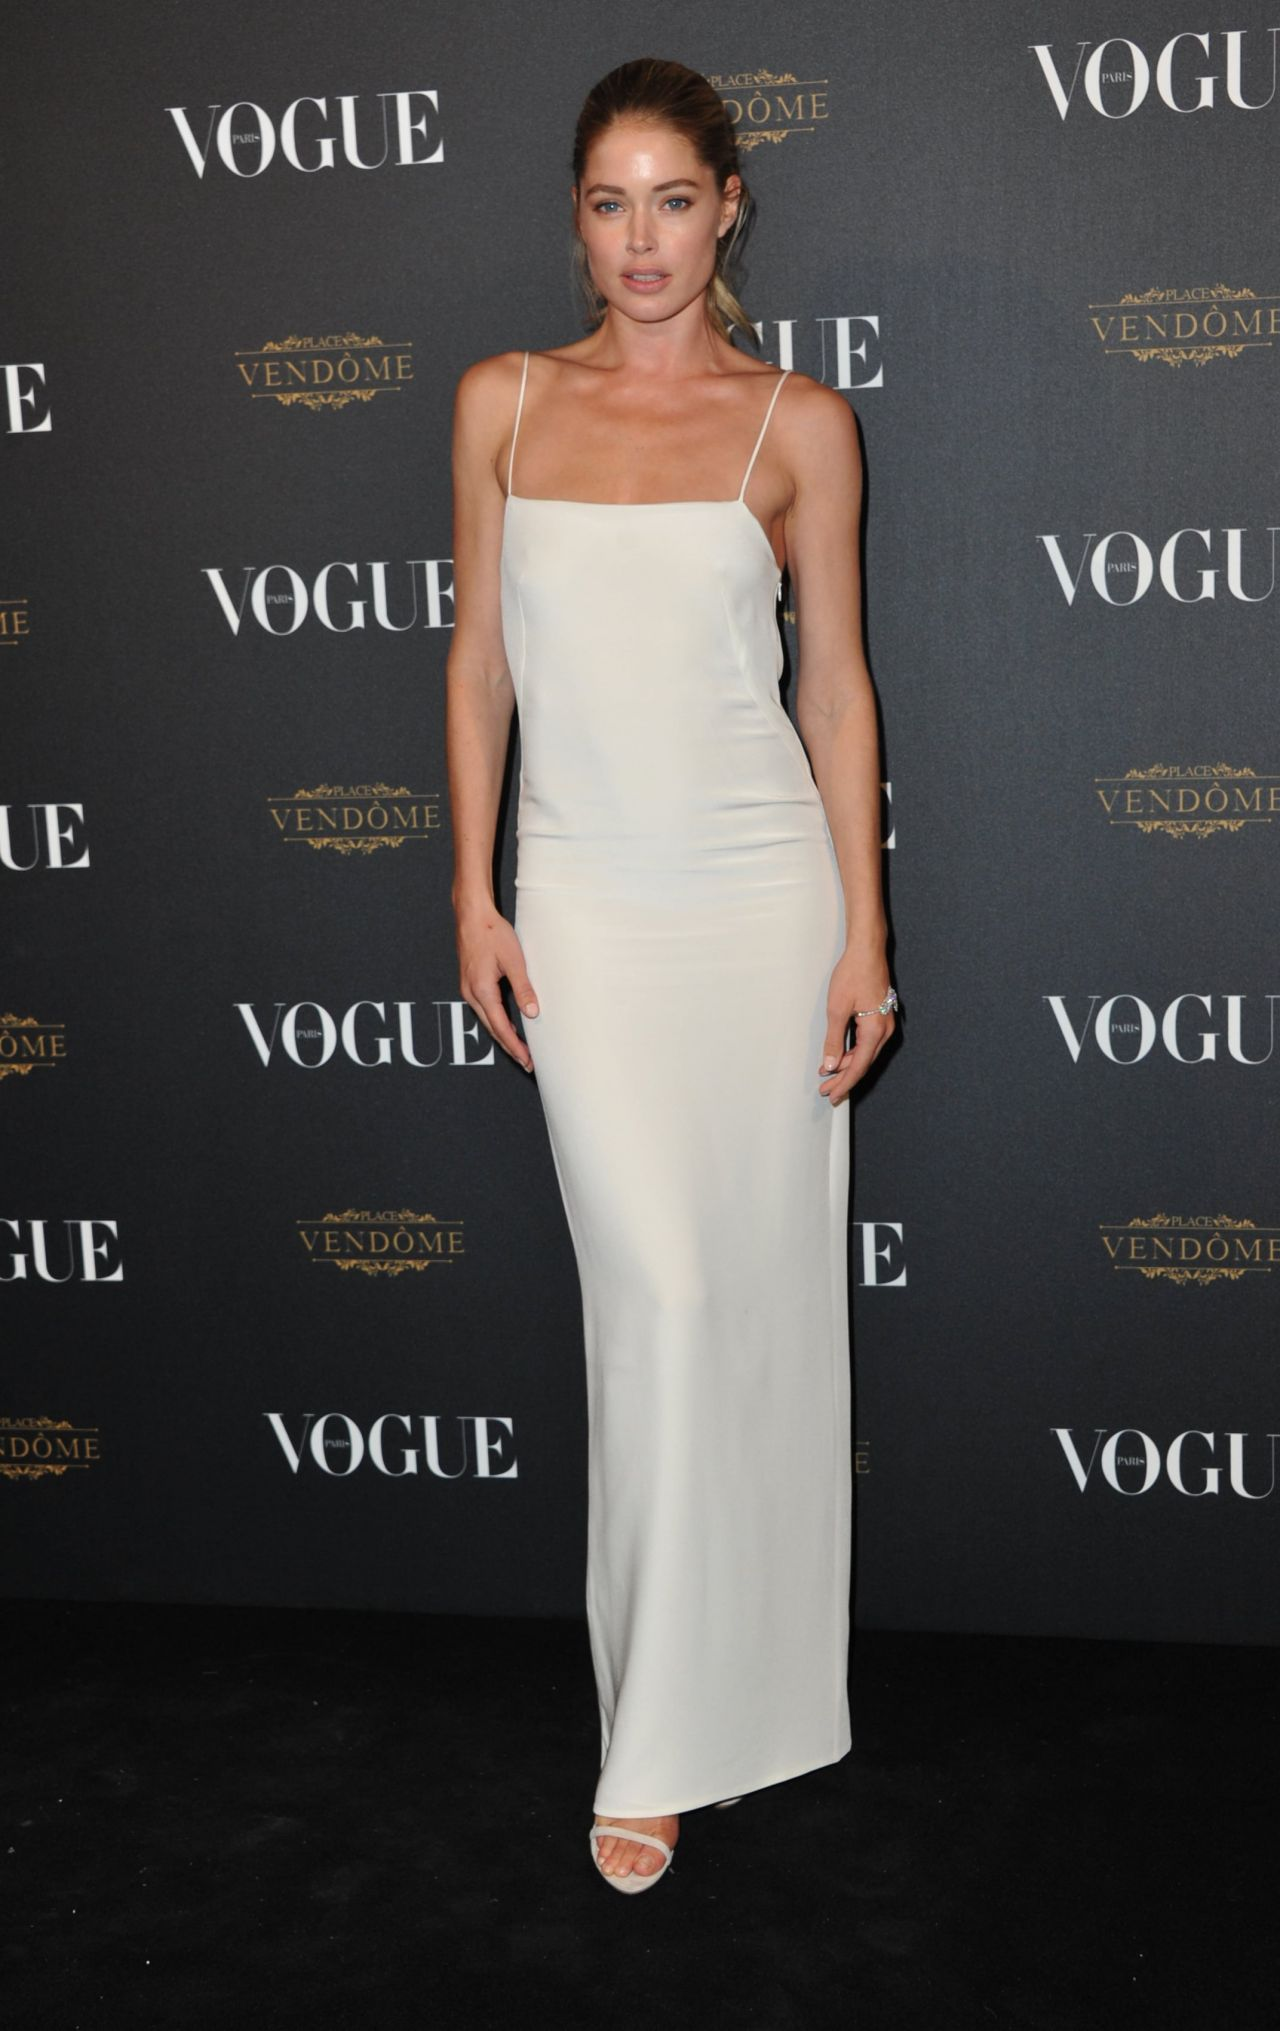 doutzen-kroes-vogue-95th-anniversary-party-in-paris_1